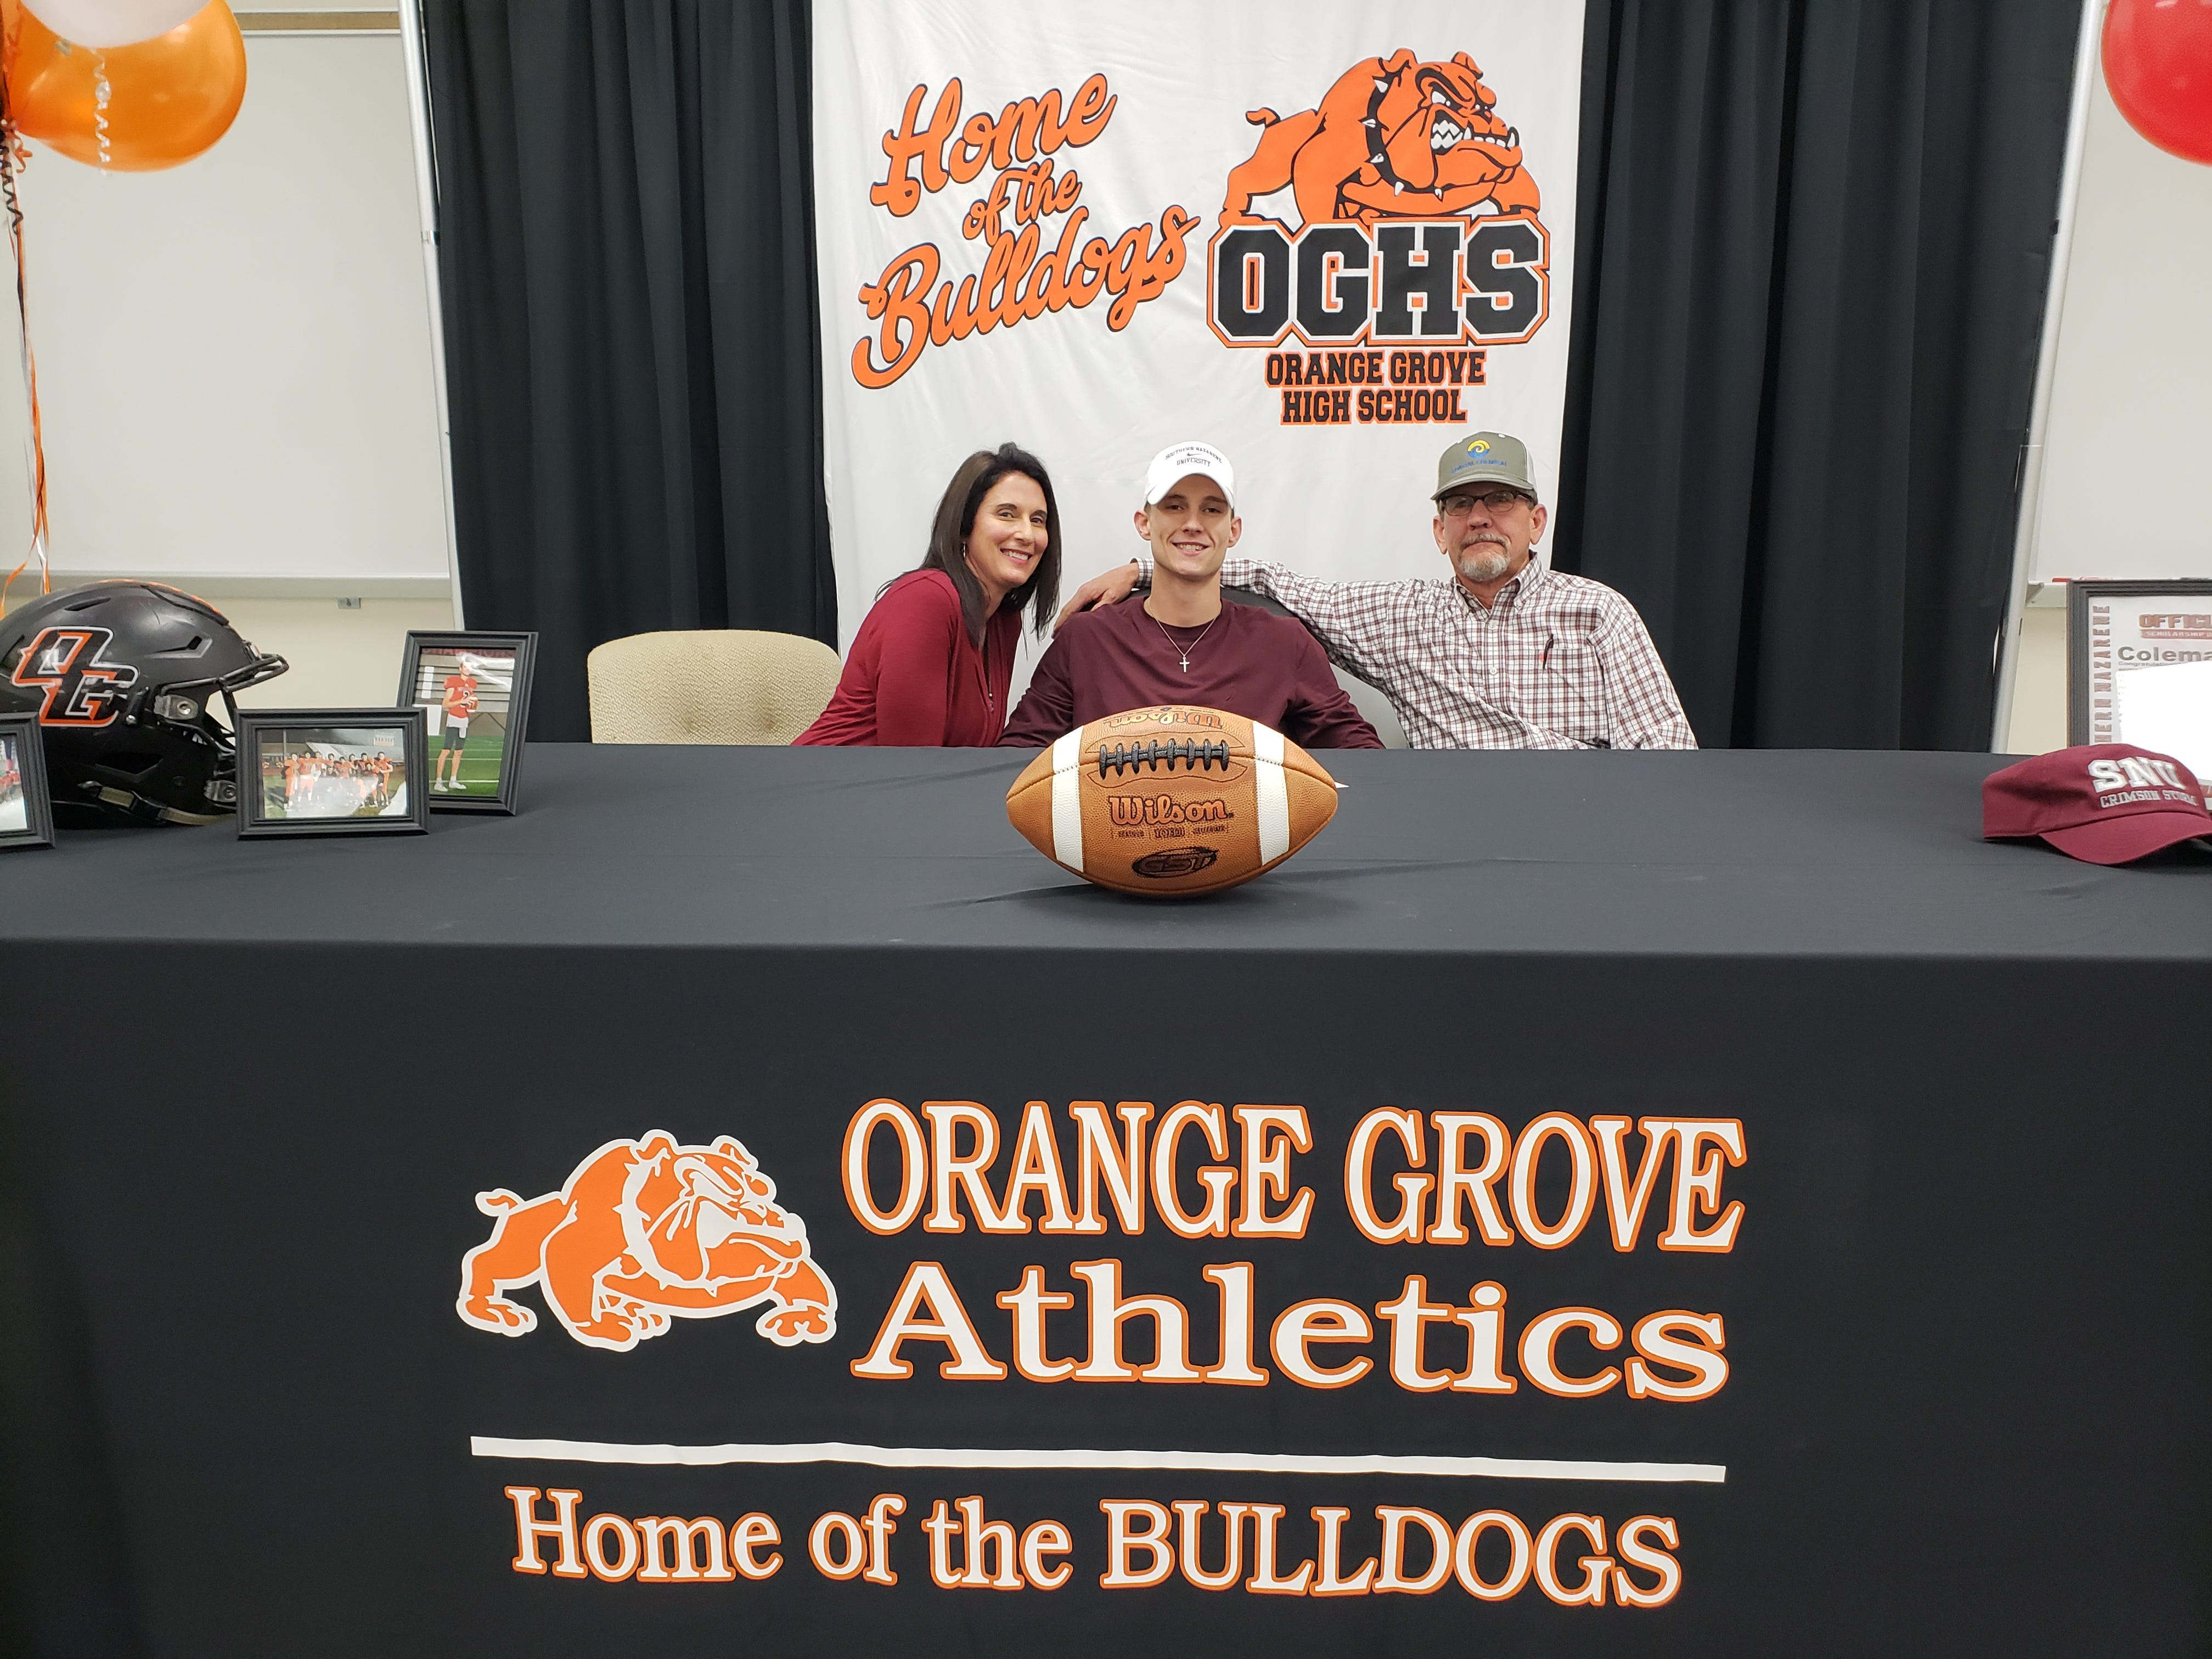 Orange Grove quarterback Coleman King signed with Southern Nazarene University on Wednesday. King completed 167 of 296 passes for 2,237 yards and 20 touchdowns. He also rushed for 754 yards and nine touchdowns.